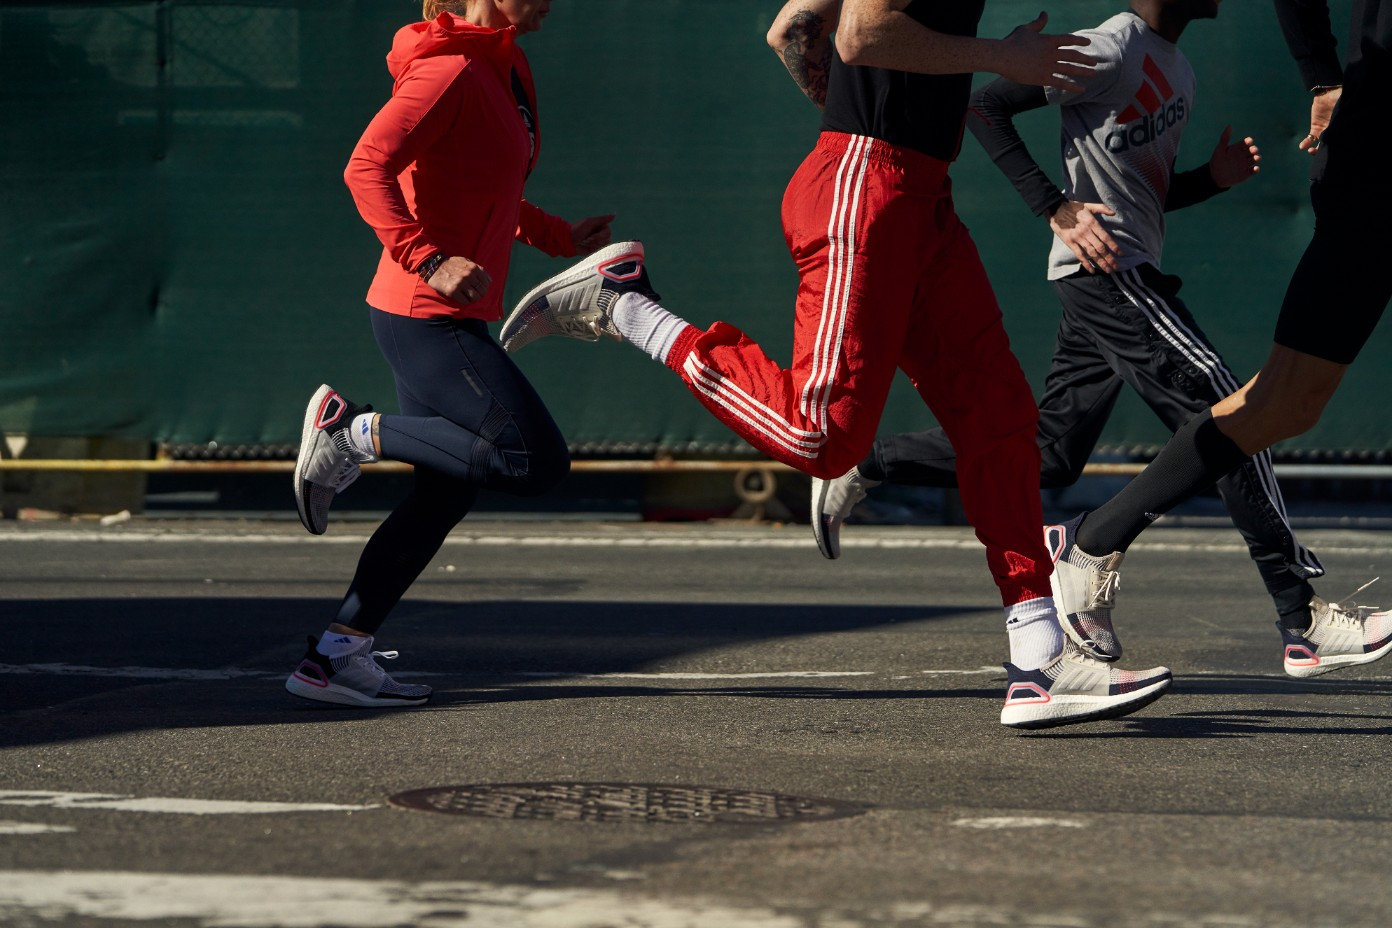 super popular 72c5c 98f74 Adidas' Reworked Ultraboost 19 Is Dropping Soon - MASSES